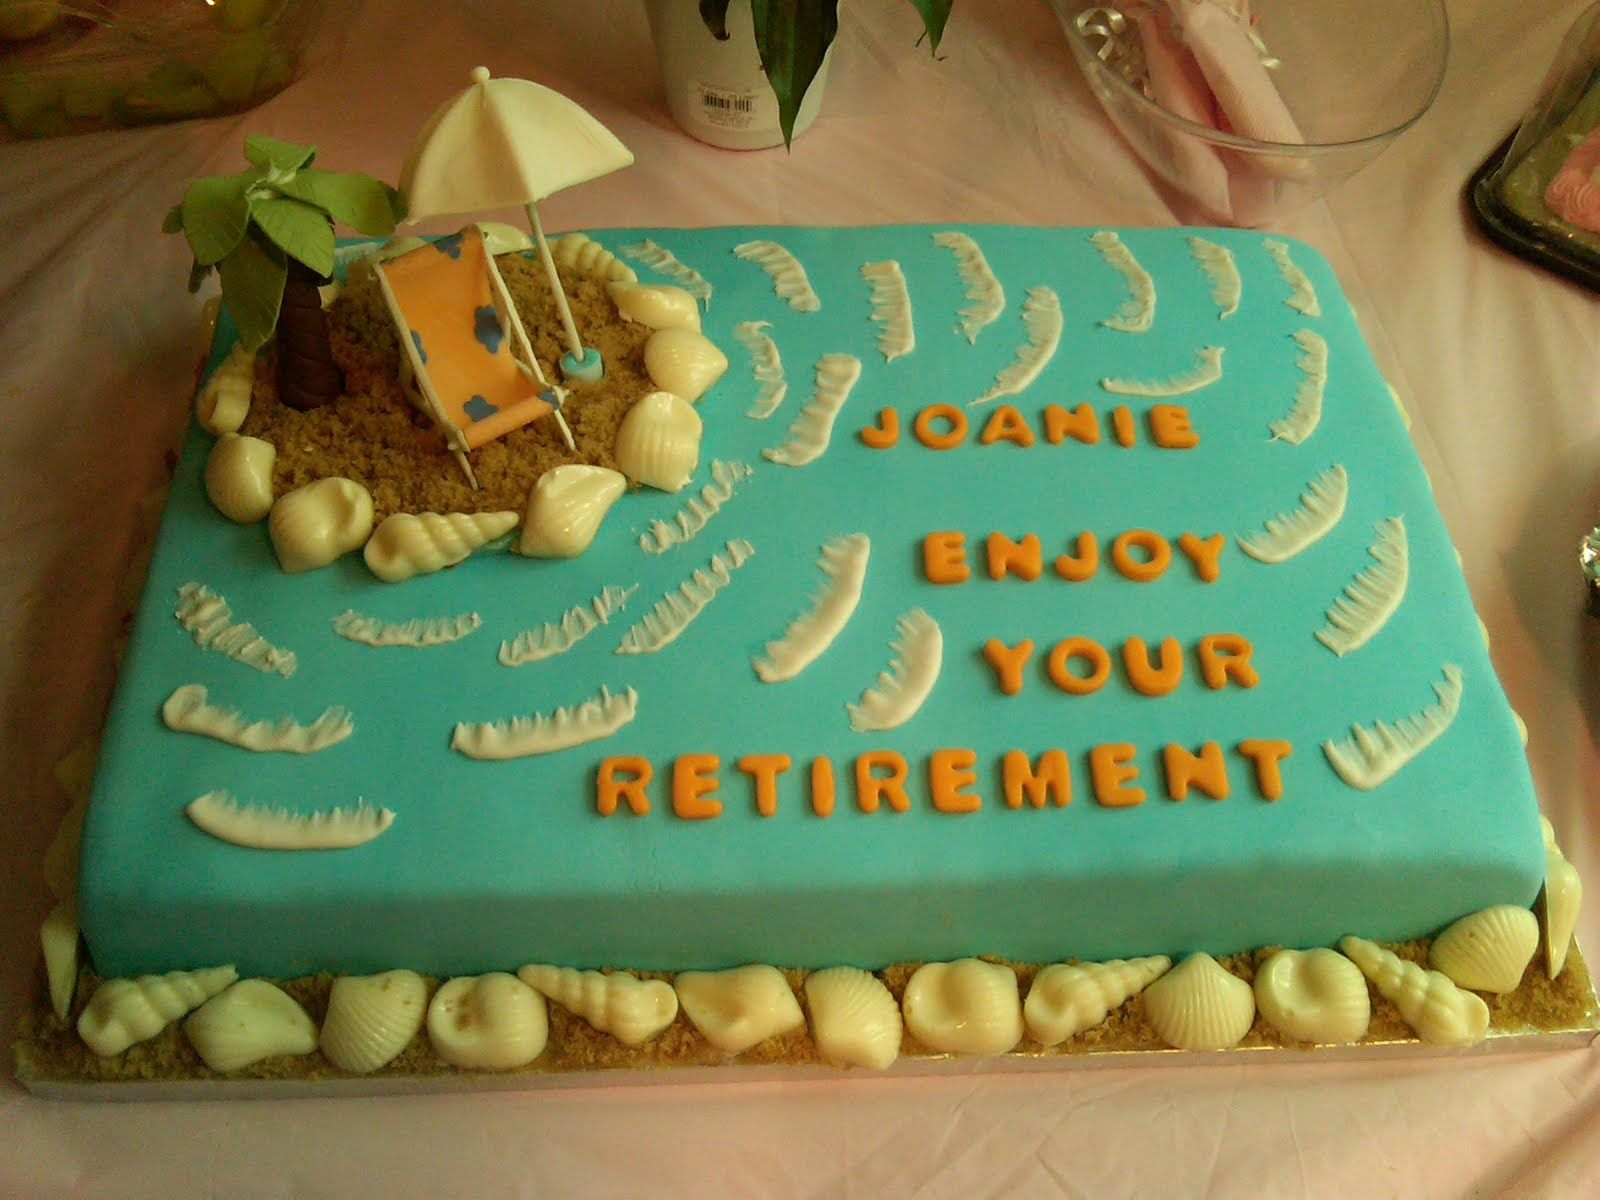 Retirement Party Ideas for electricians Cakes n Goodies: Joanie s Retirement Cake Retirement ...